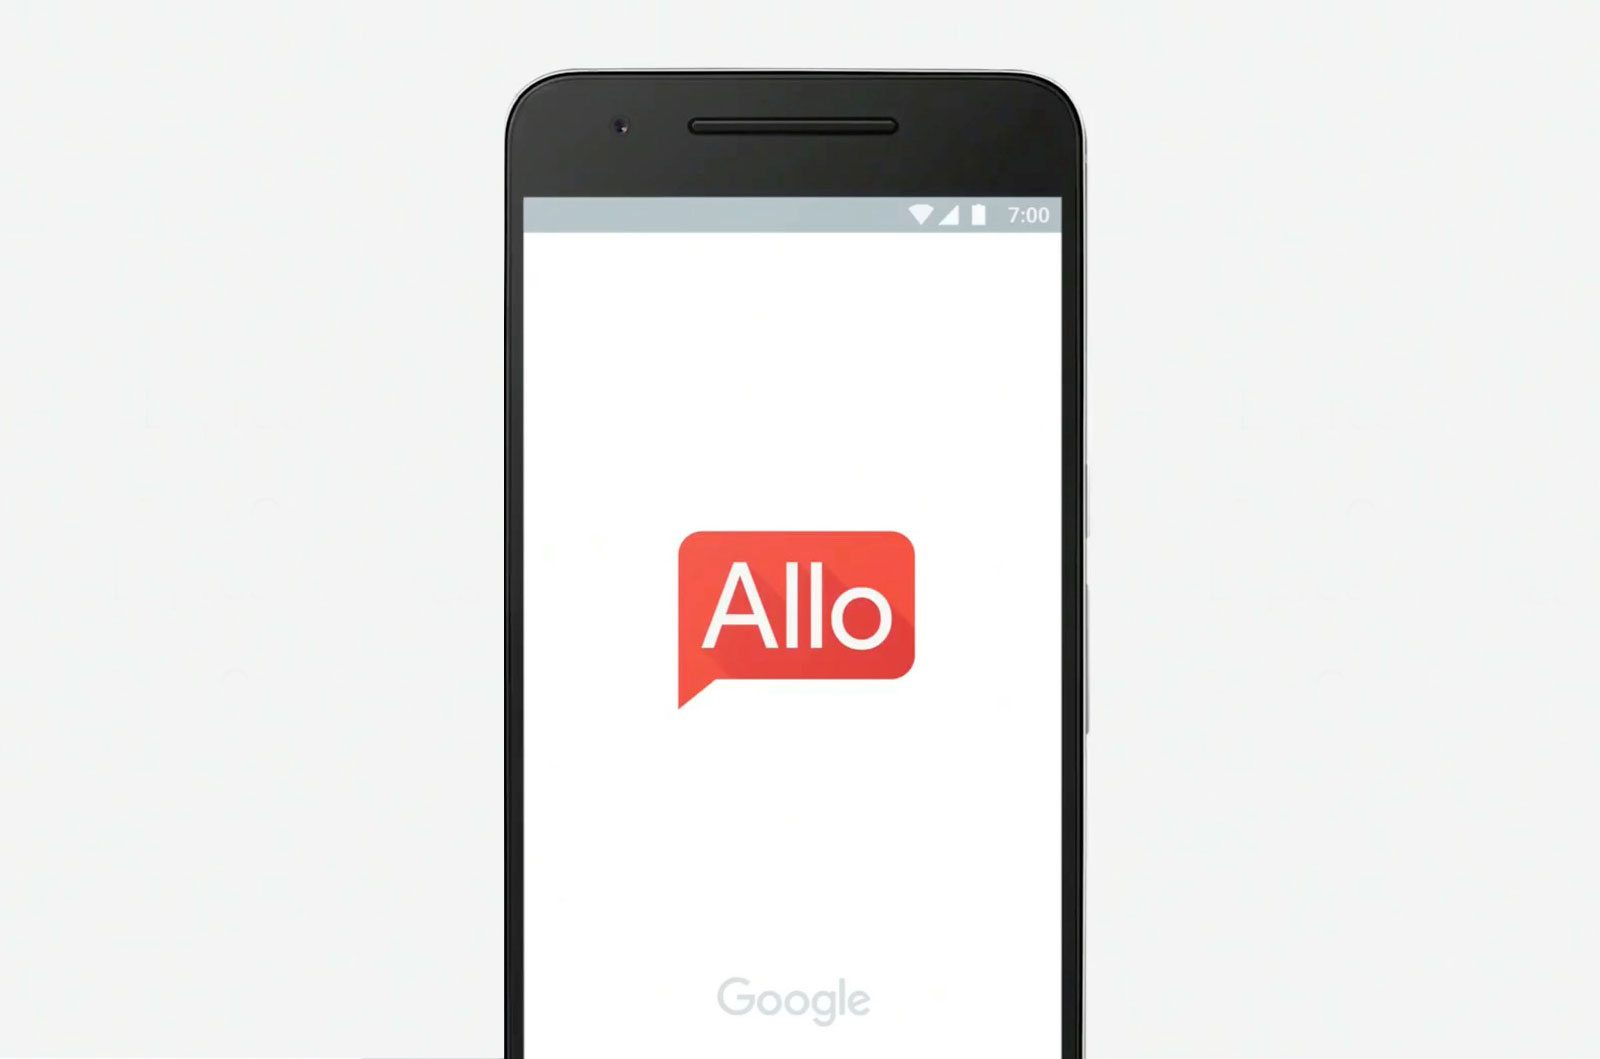 Google Allo 1.0.006 for Your Android Devices Is Here [APK Download]